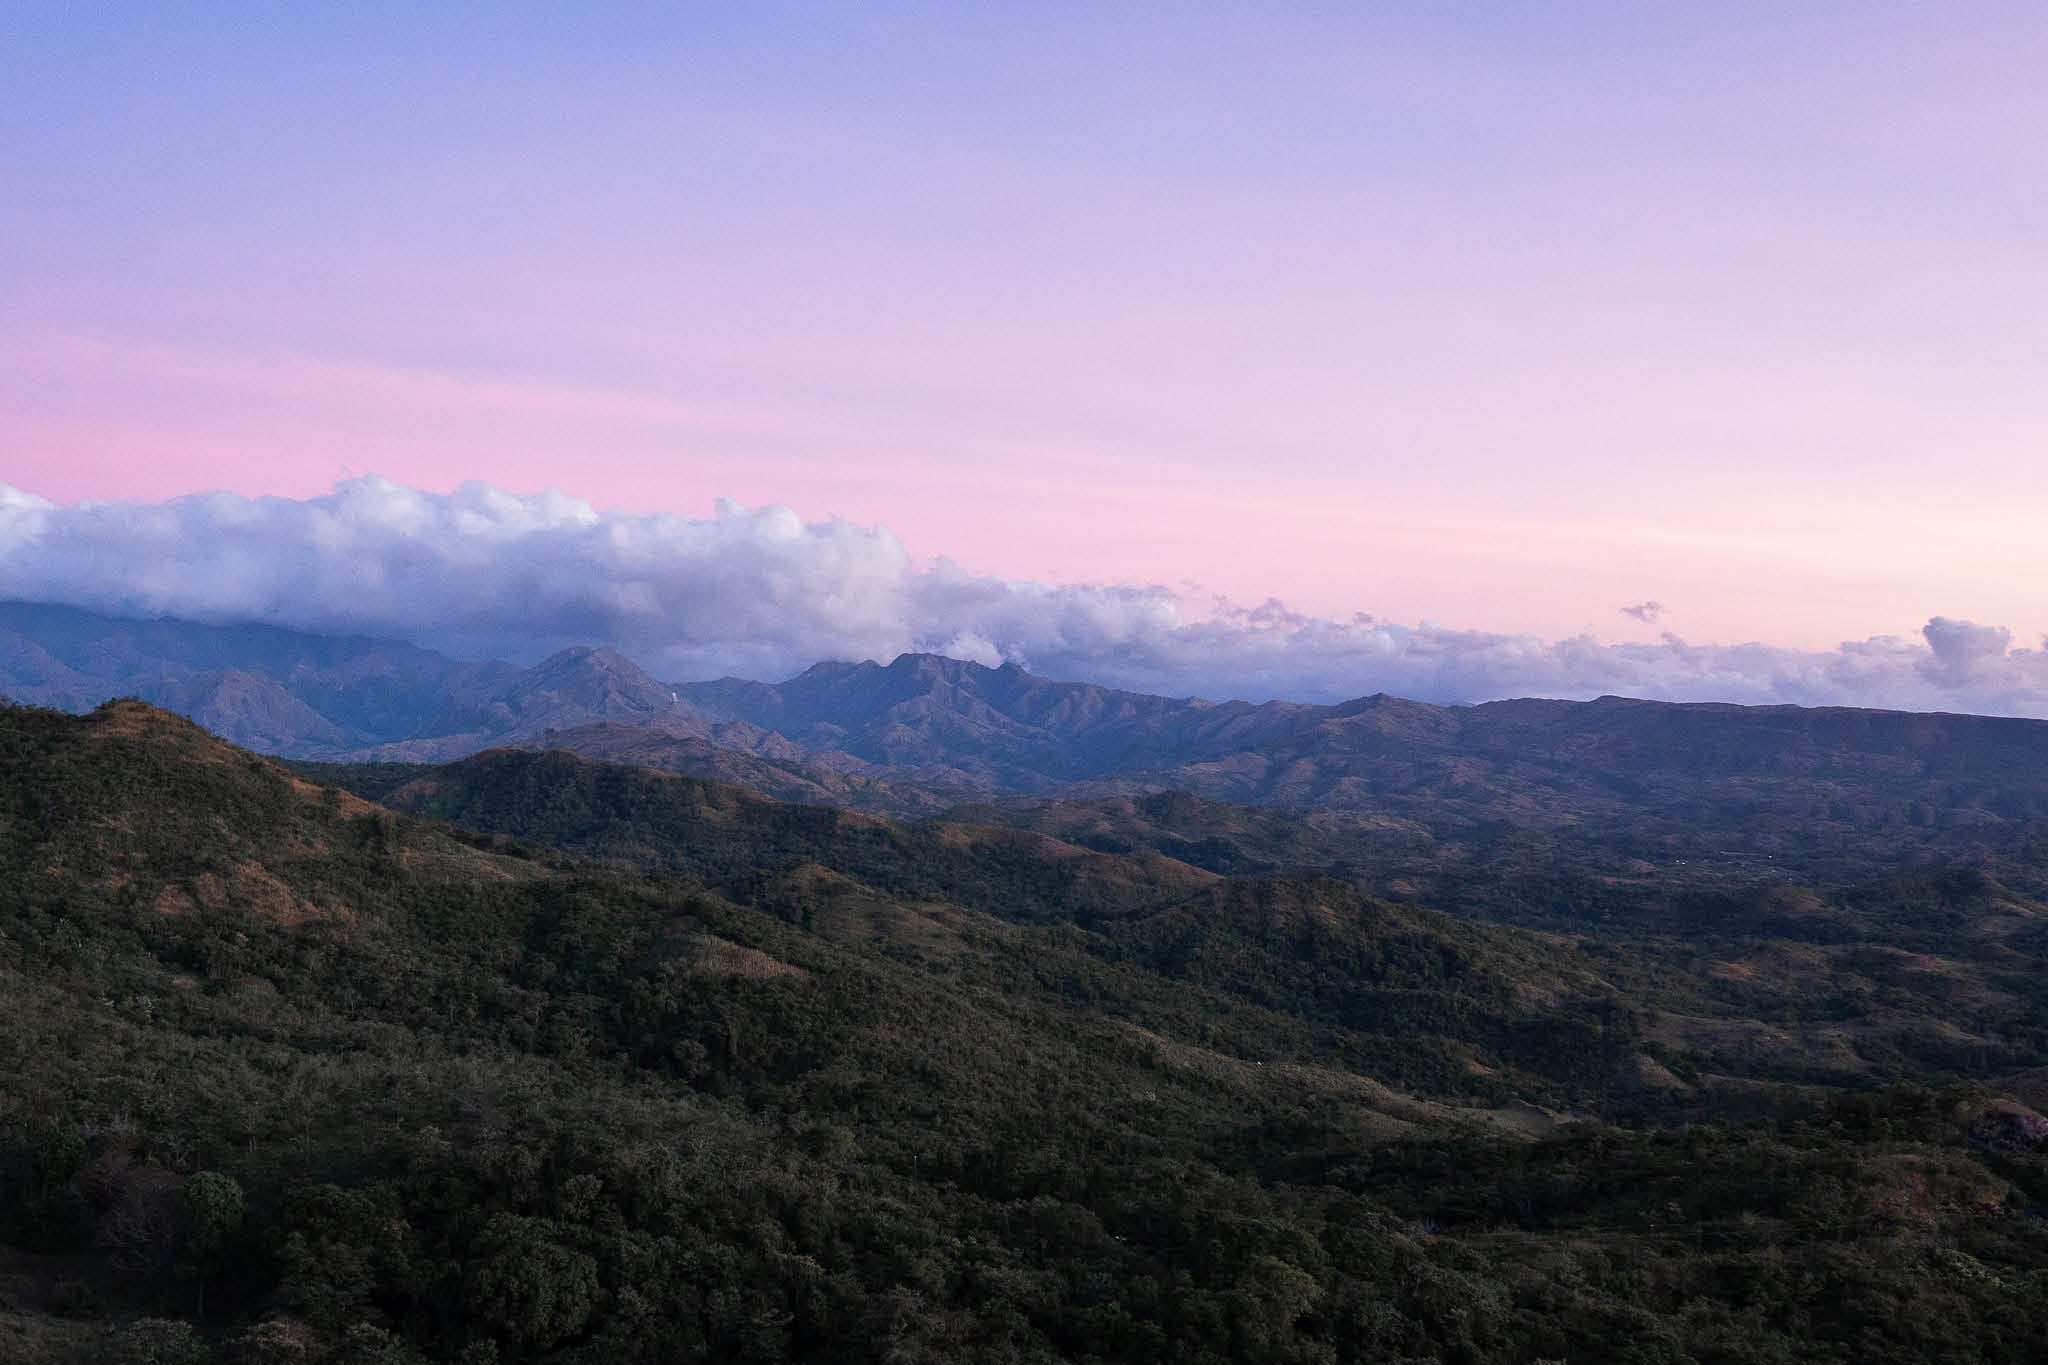 Mountains and sunset in Panama